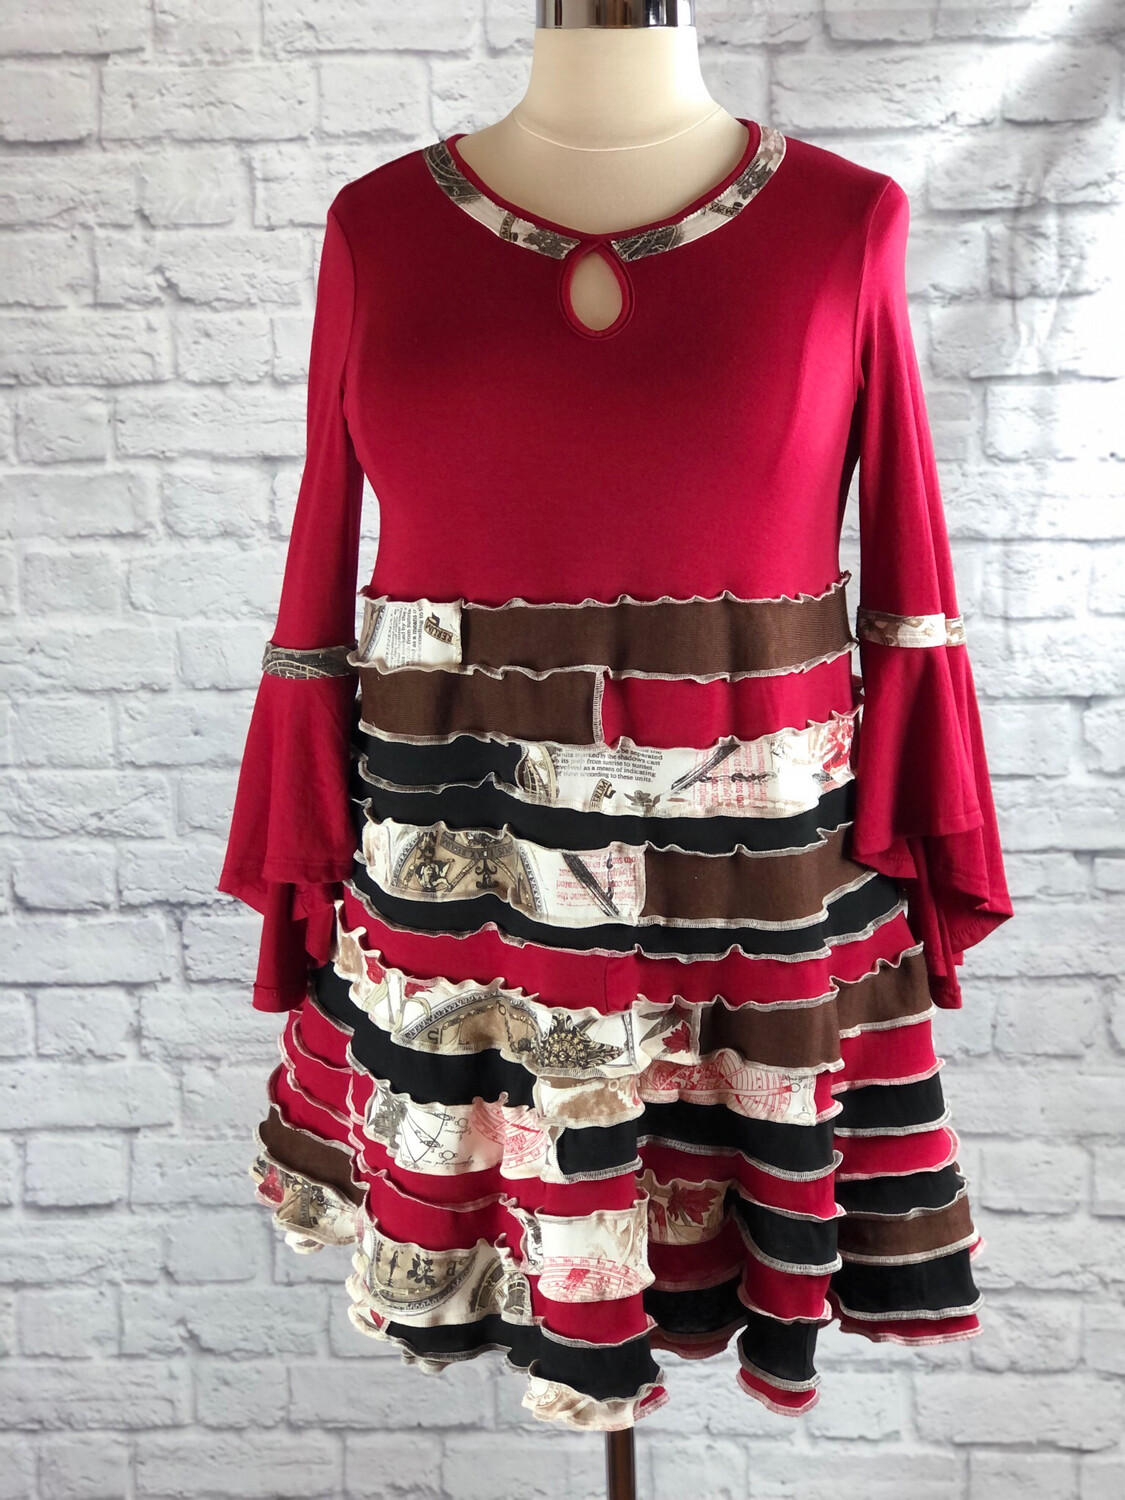 S Threads Upcycled Dress Spiral Patchwork Bell Sleeve Keyhole Size XL/2X/3X